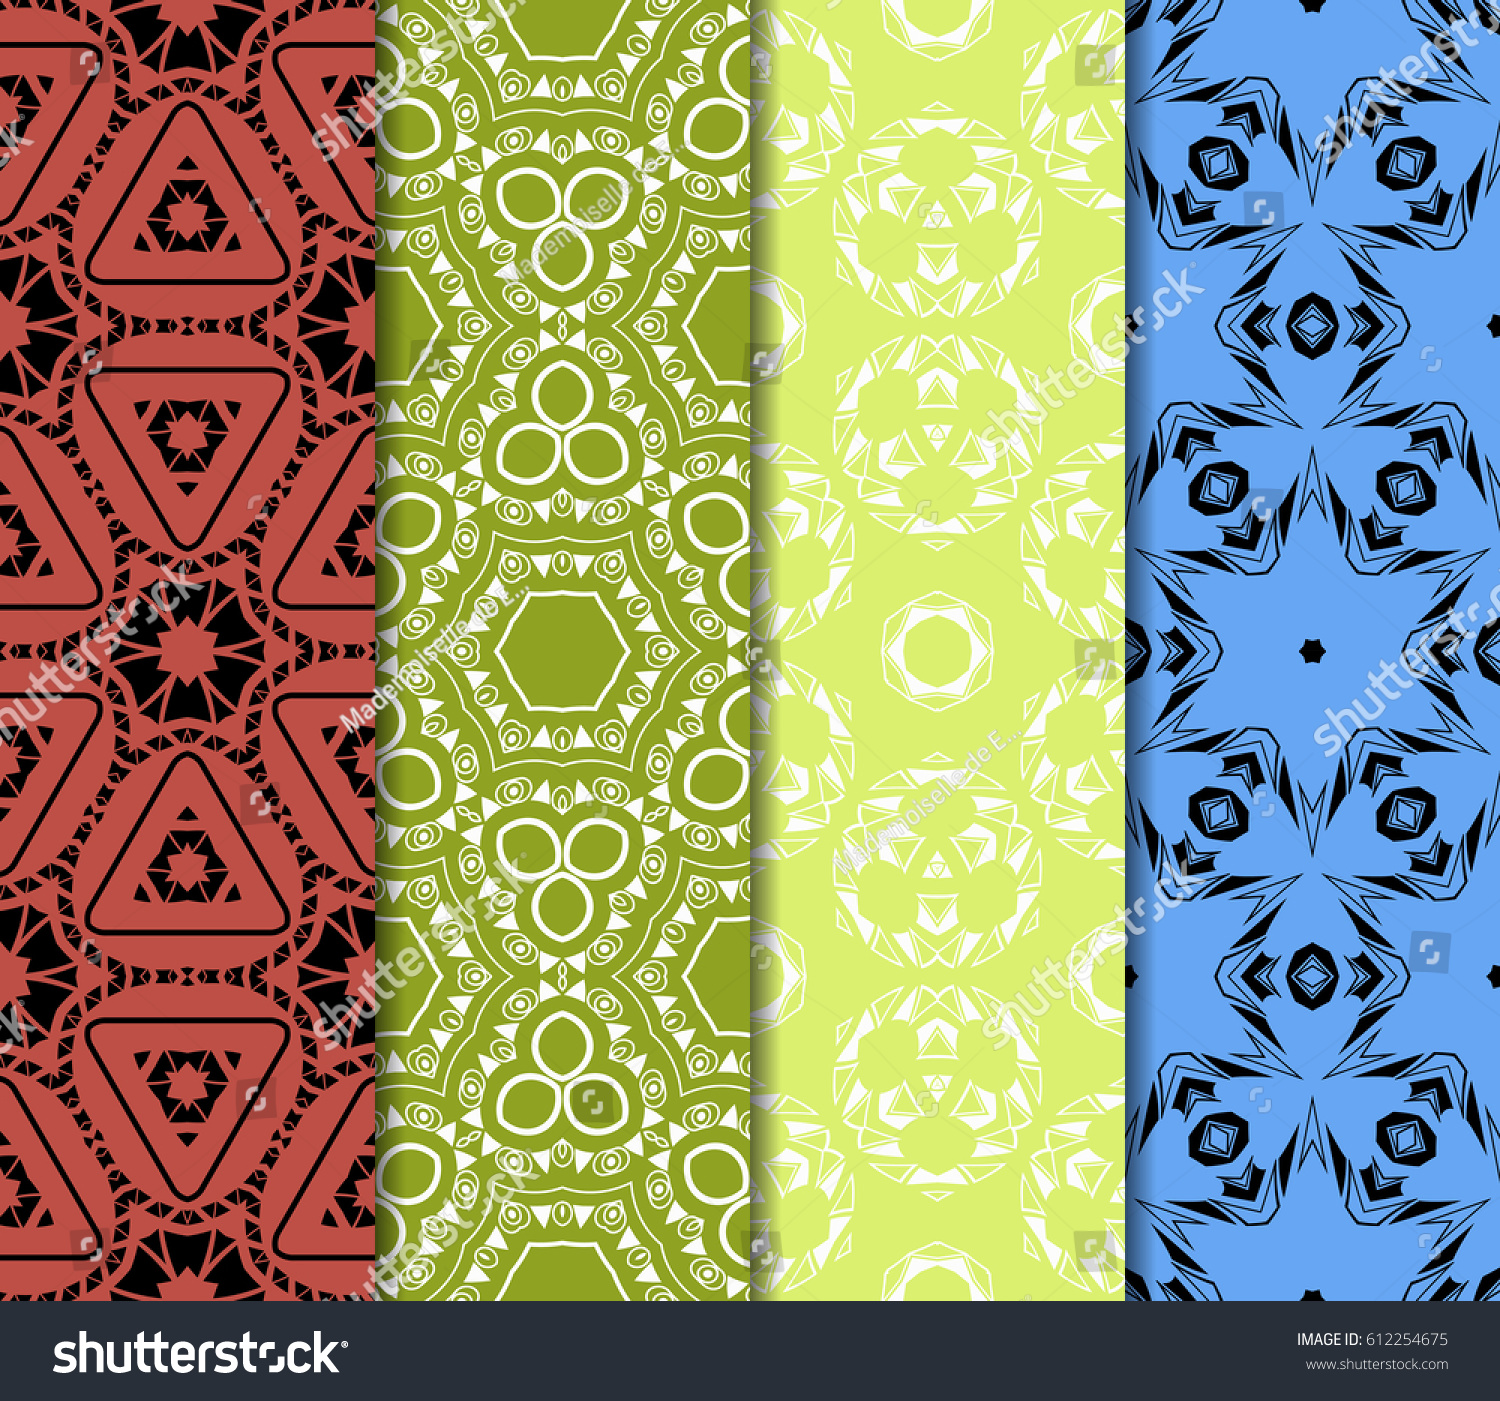 set of decorative ethnic ornament Seamless vector illustration Floral style For interior design fabric print page fill wallpaper textile